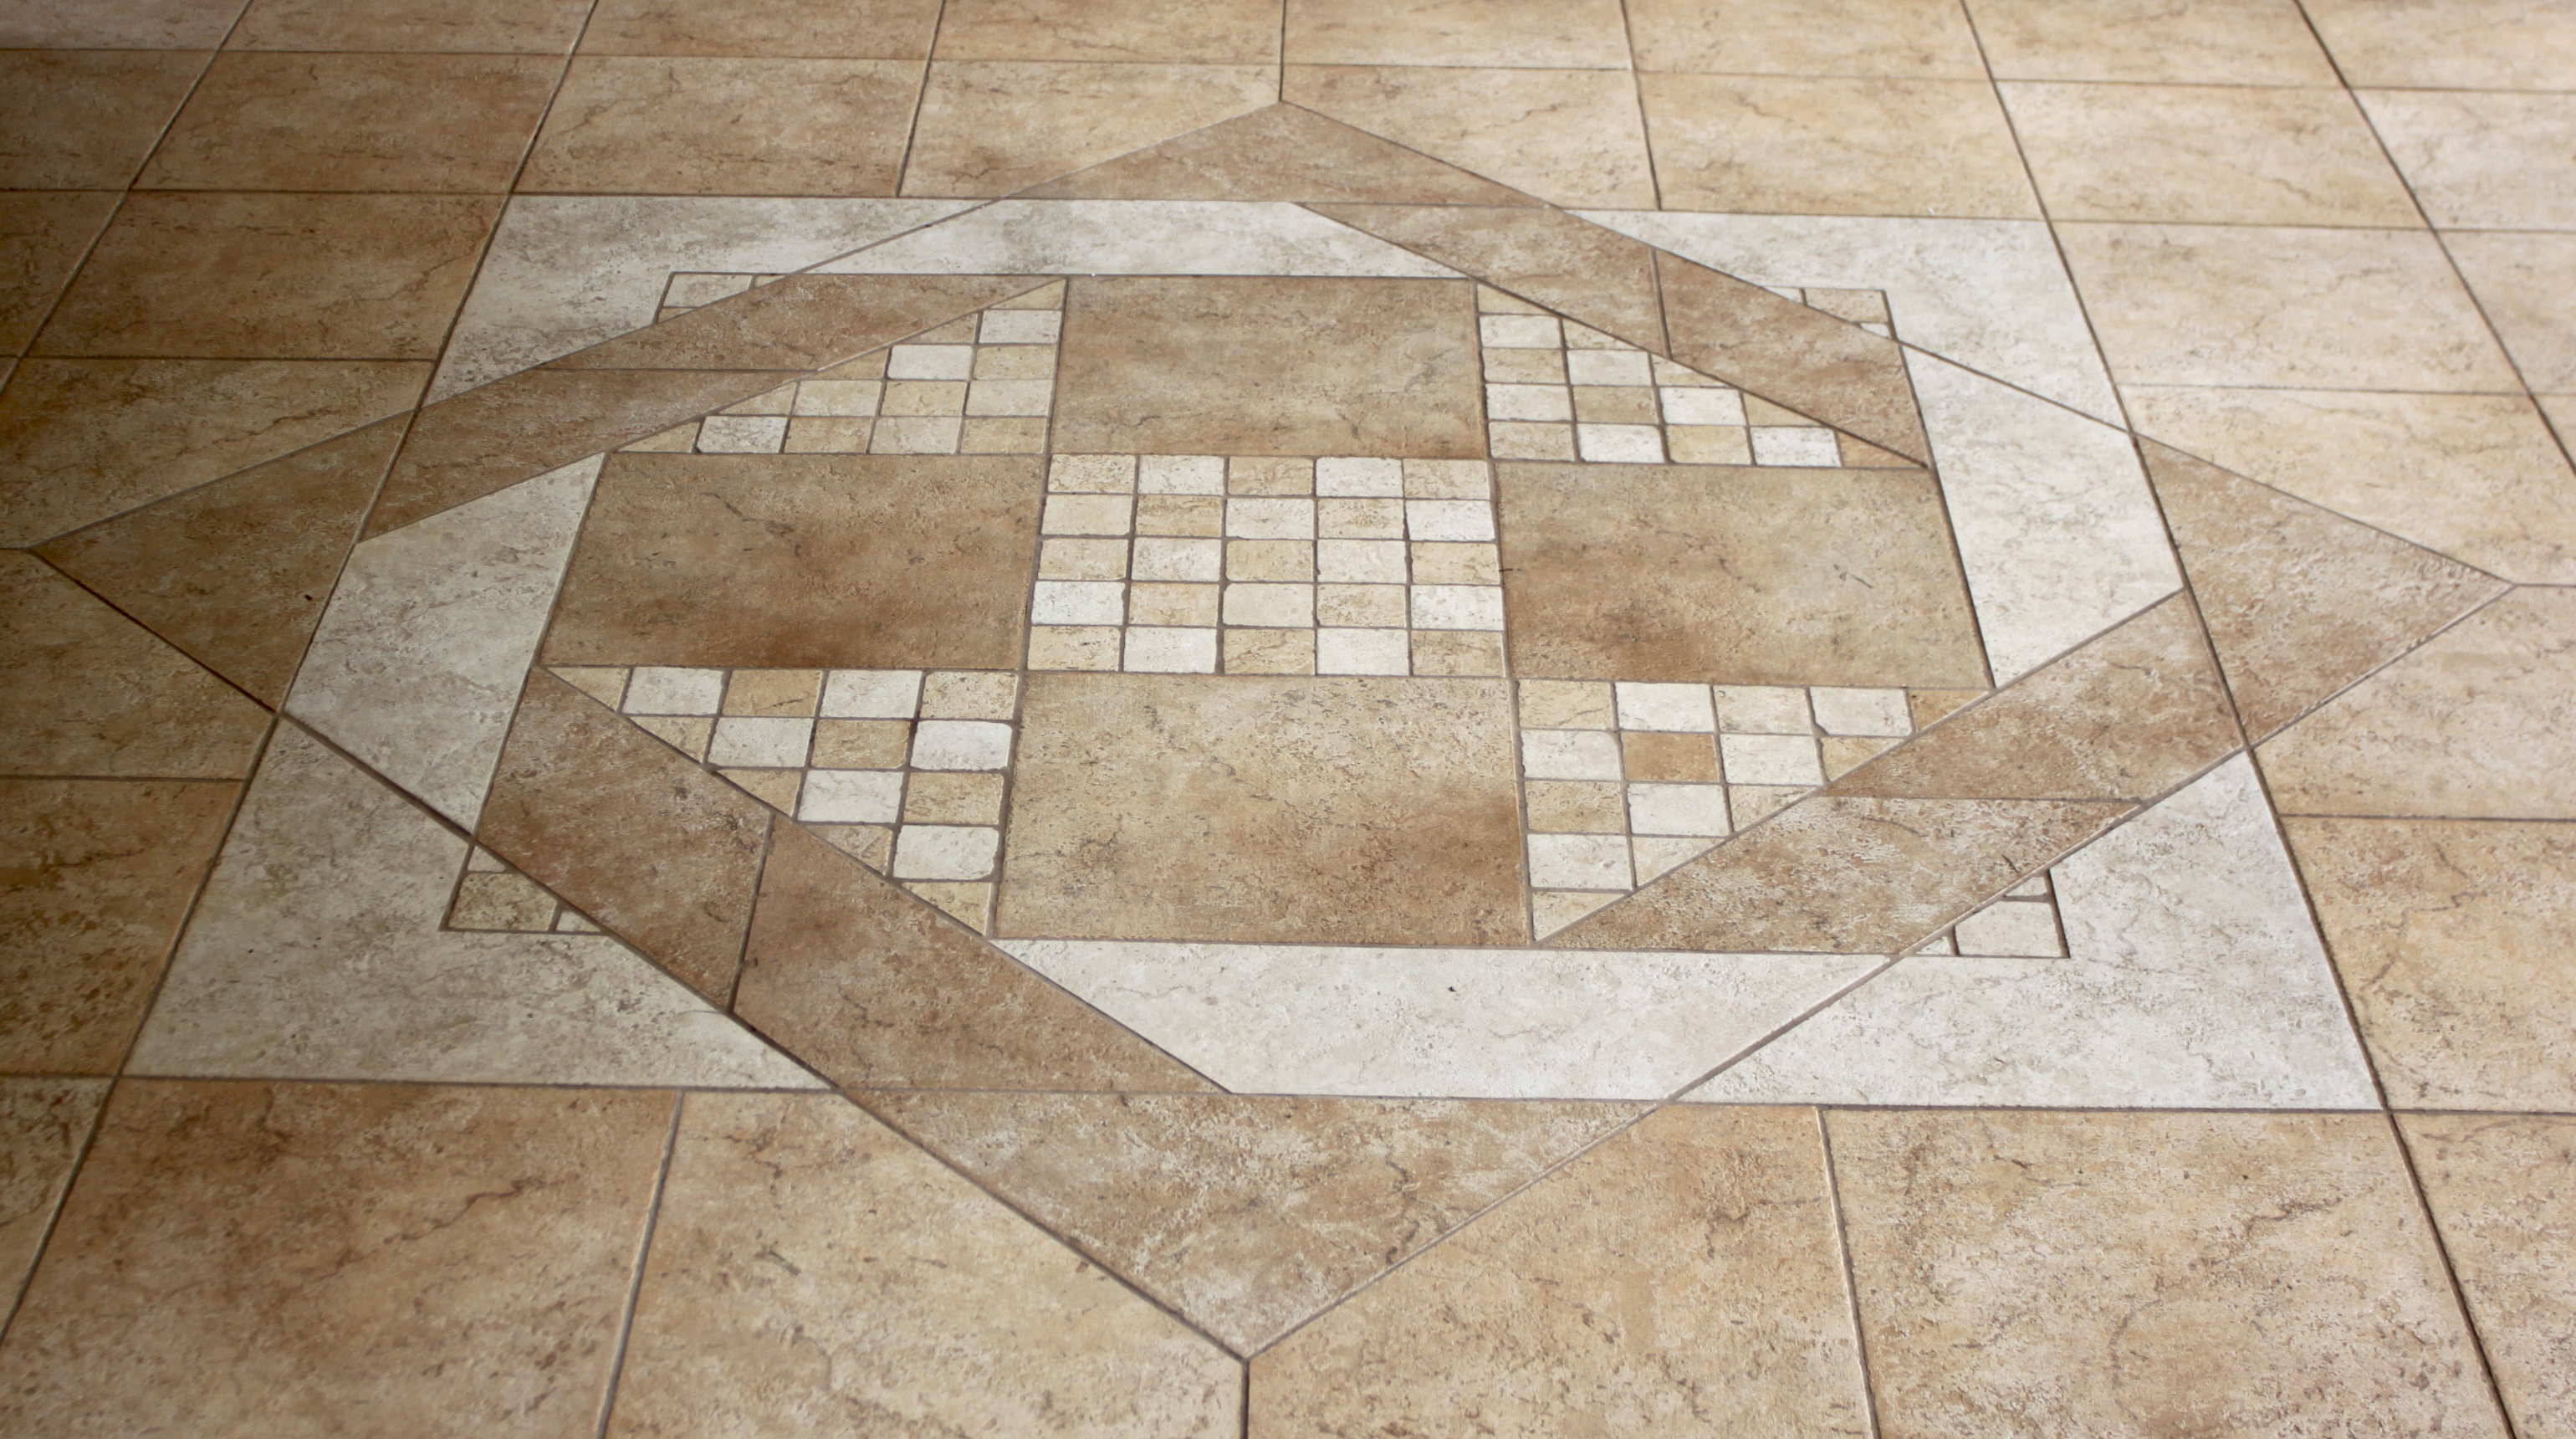 ceramic tile installation patterns 30 ideas for bathroom carpet floor tiles 620